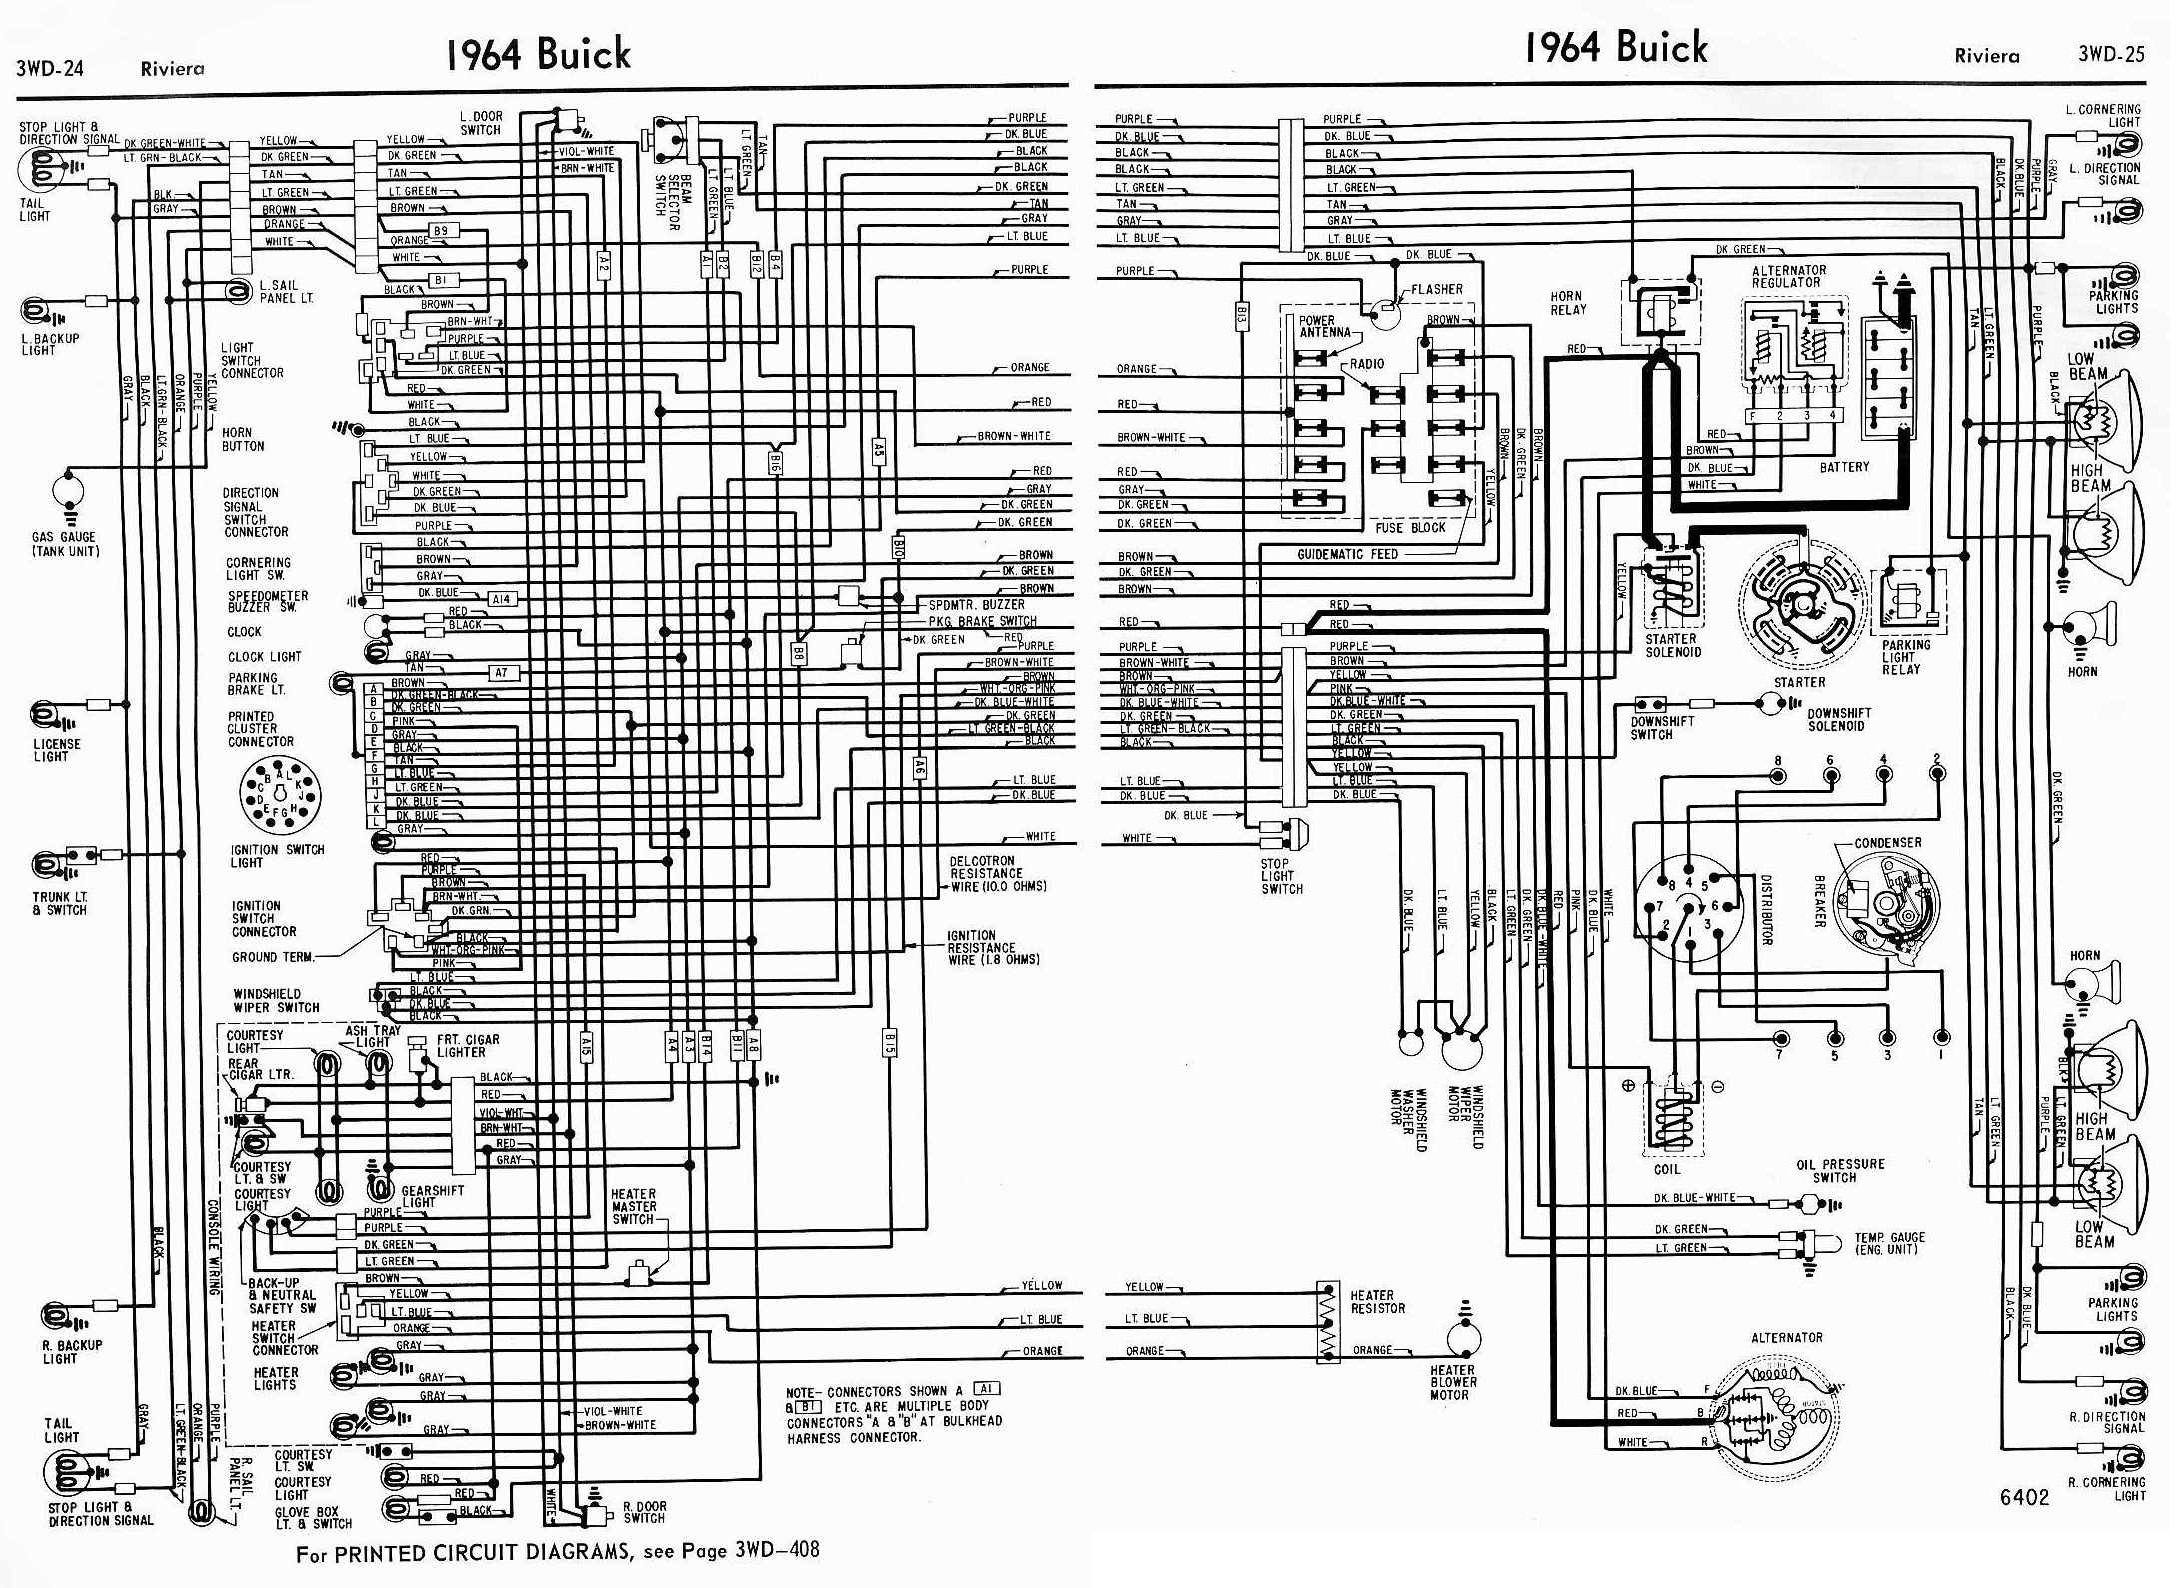 1964 Buick Riviera Ignition Wiring Diagram